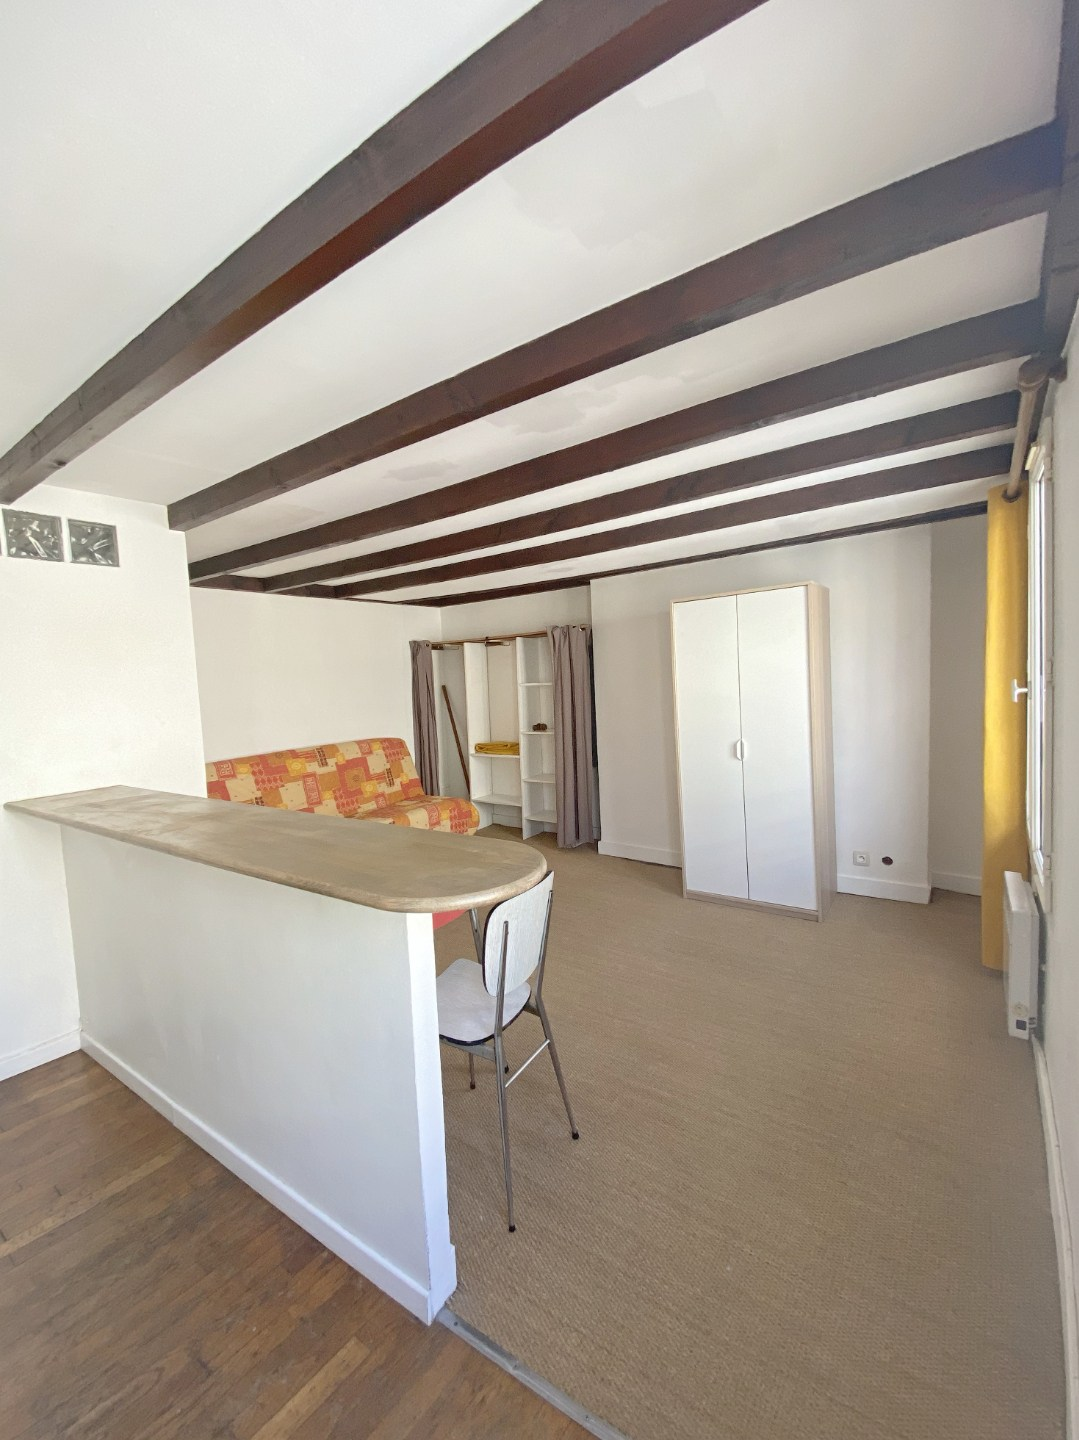 Montmartre, Abbesses, Beautiful studio in good condition in 4th and last floor, ceiling beams, quiet, on unobscured courtyard without opposite! 6